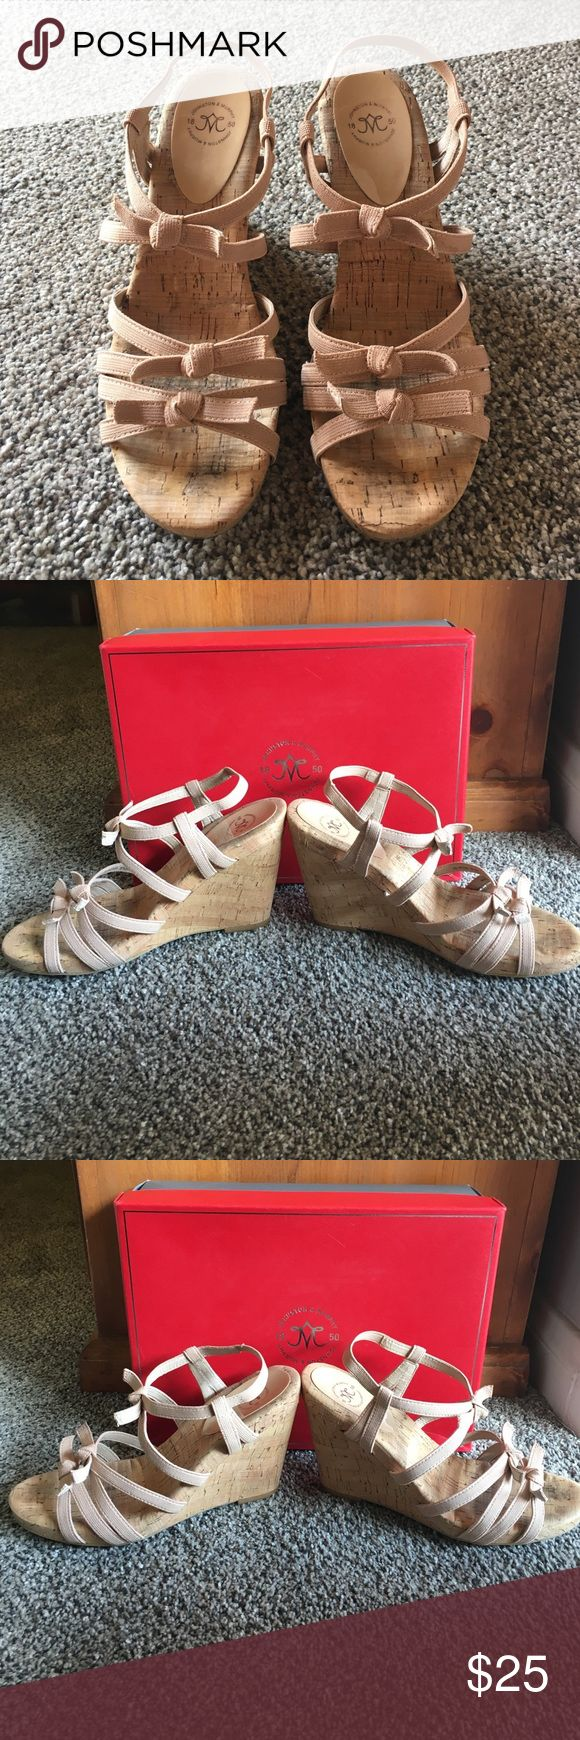 """Johnston & Murphy Strappy Sandals Adorable, gently worn nude strappy sandals by Johnston and Murphy.  Worn a handful of times.  4 1/8"""" cork wedge heel.  Straps are elastic outside, lined with leather.  Adorable knotted bow-like details! Reasonable offers welcome, please use the """"Offer"""" button  Johnston & Murphy Shoes Sandals"""